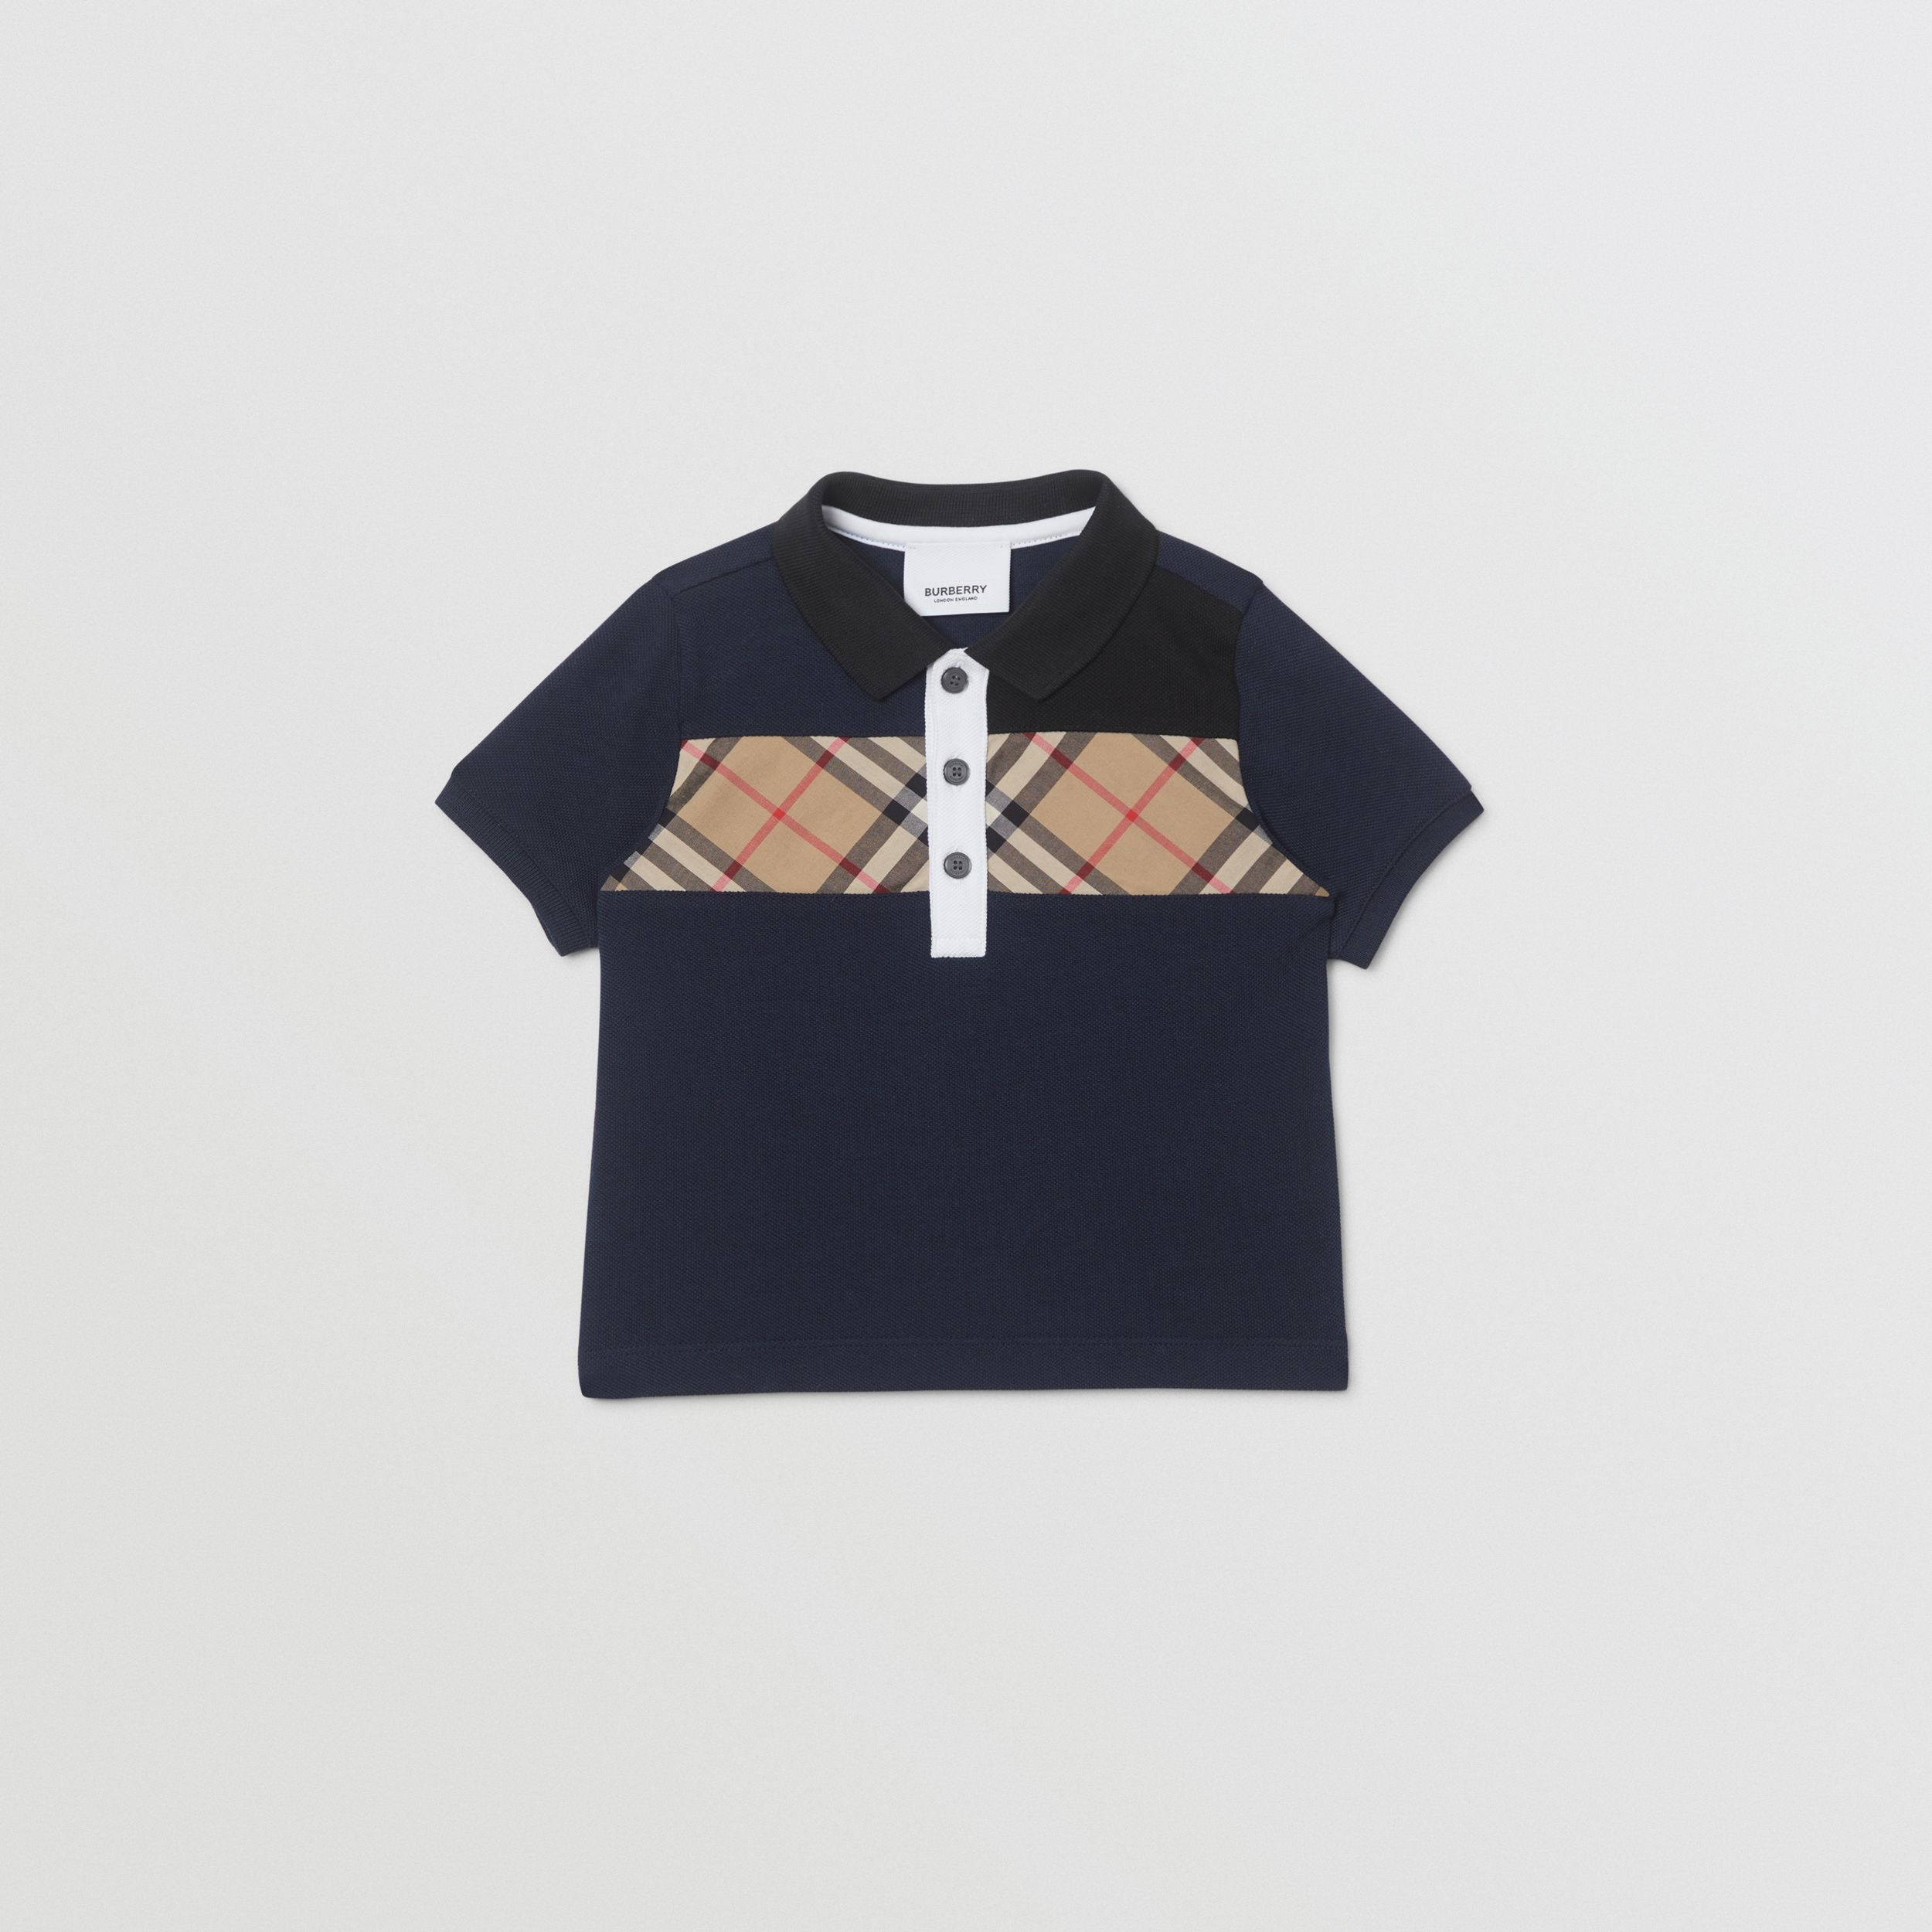 Vintage Check Panel Cotton Polo Shirt in Navy - Children | Burberry Australia - 1